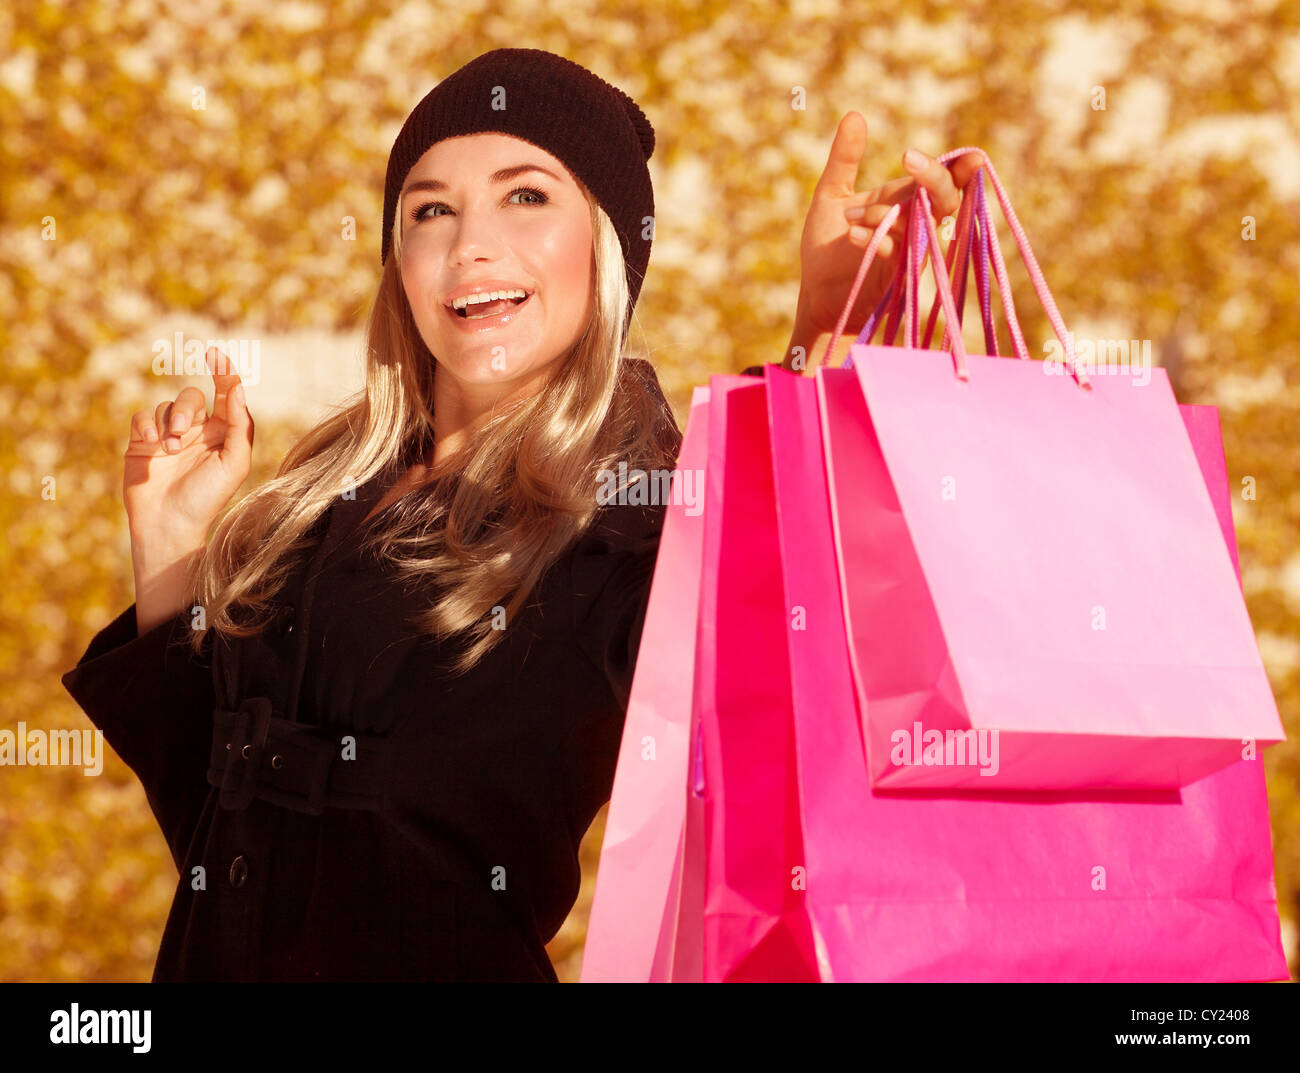 Picture of shopper girl holding presents bags in hand, beautiful customer enjoy autumnal season sales, closeup portrait - Stock Image